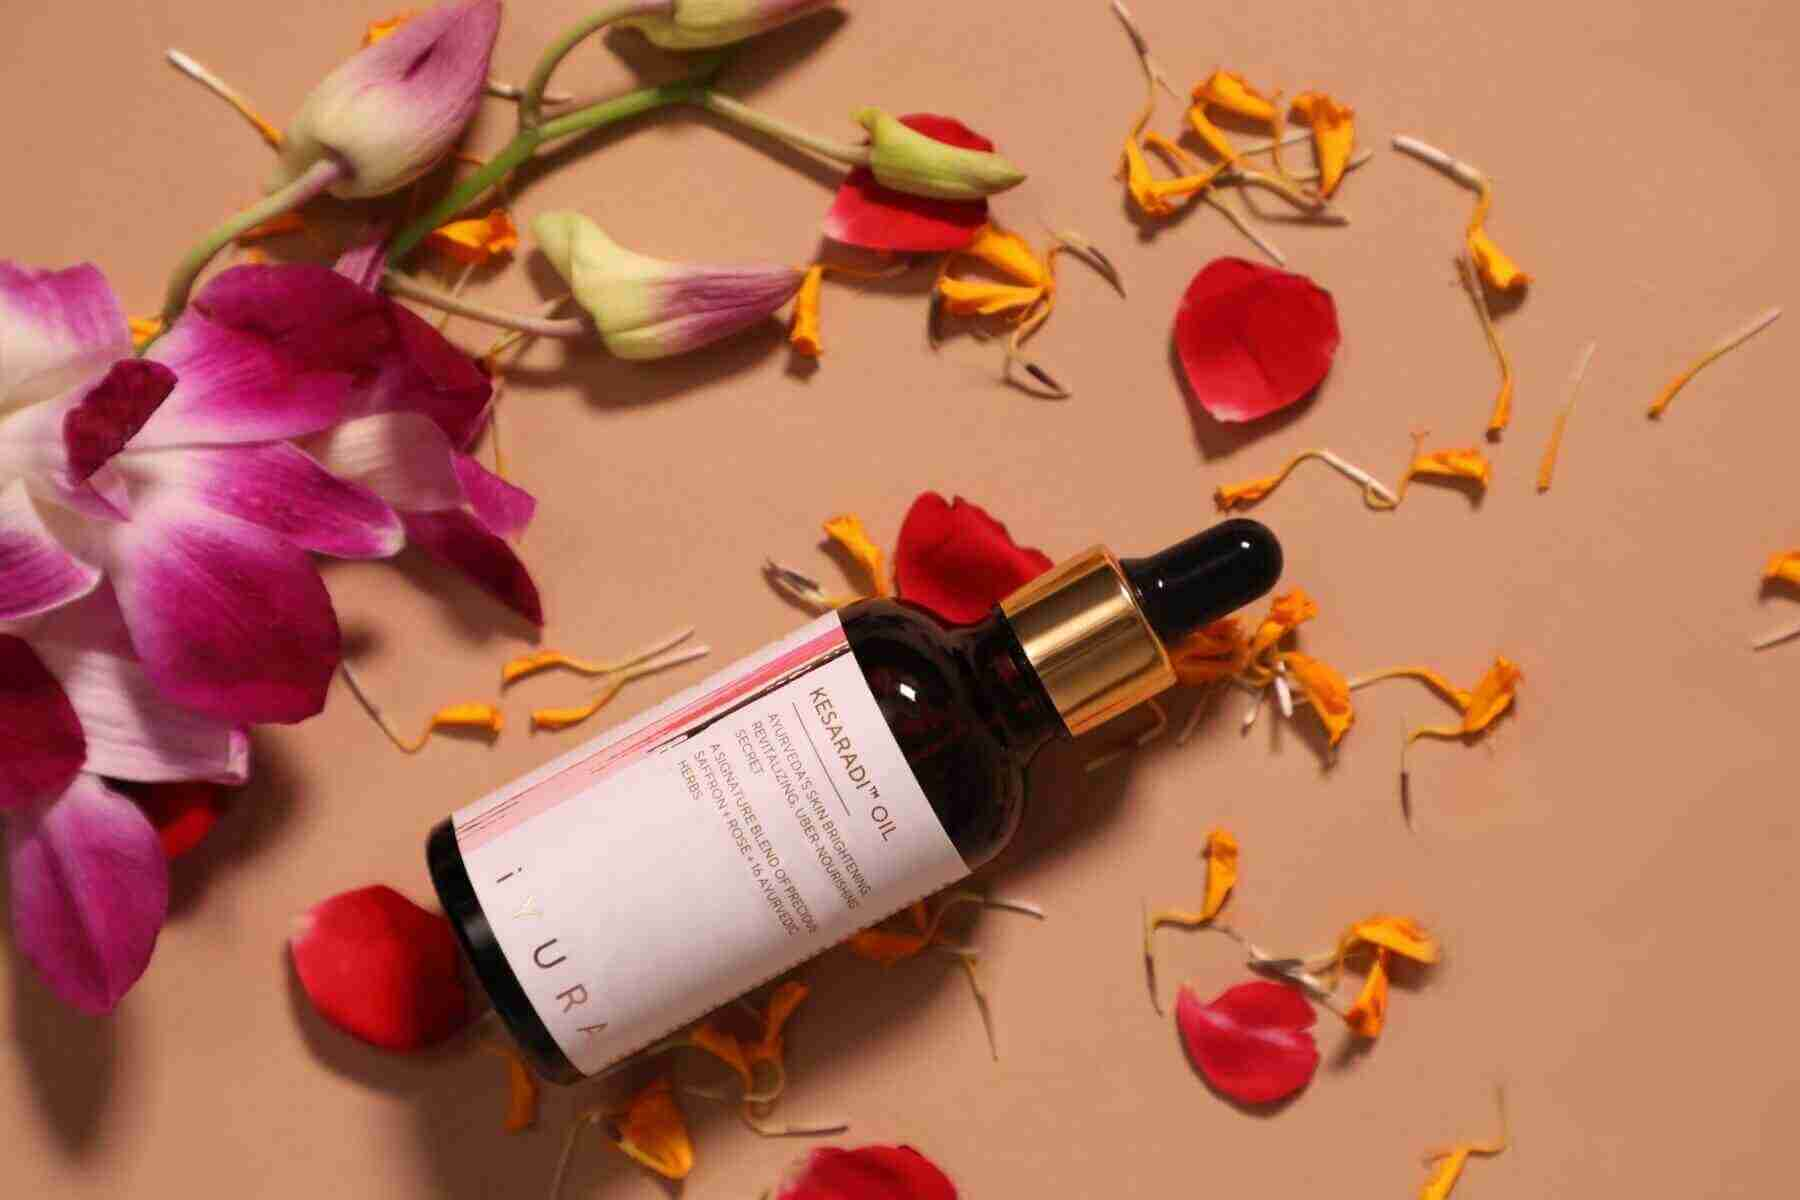 iYURA Kesaradi Oil - 3 Drops to Drop Dead Gorgeous